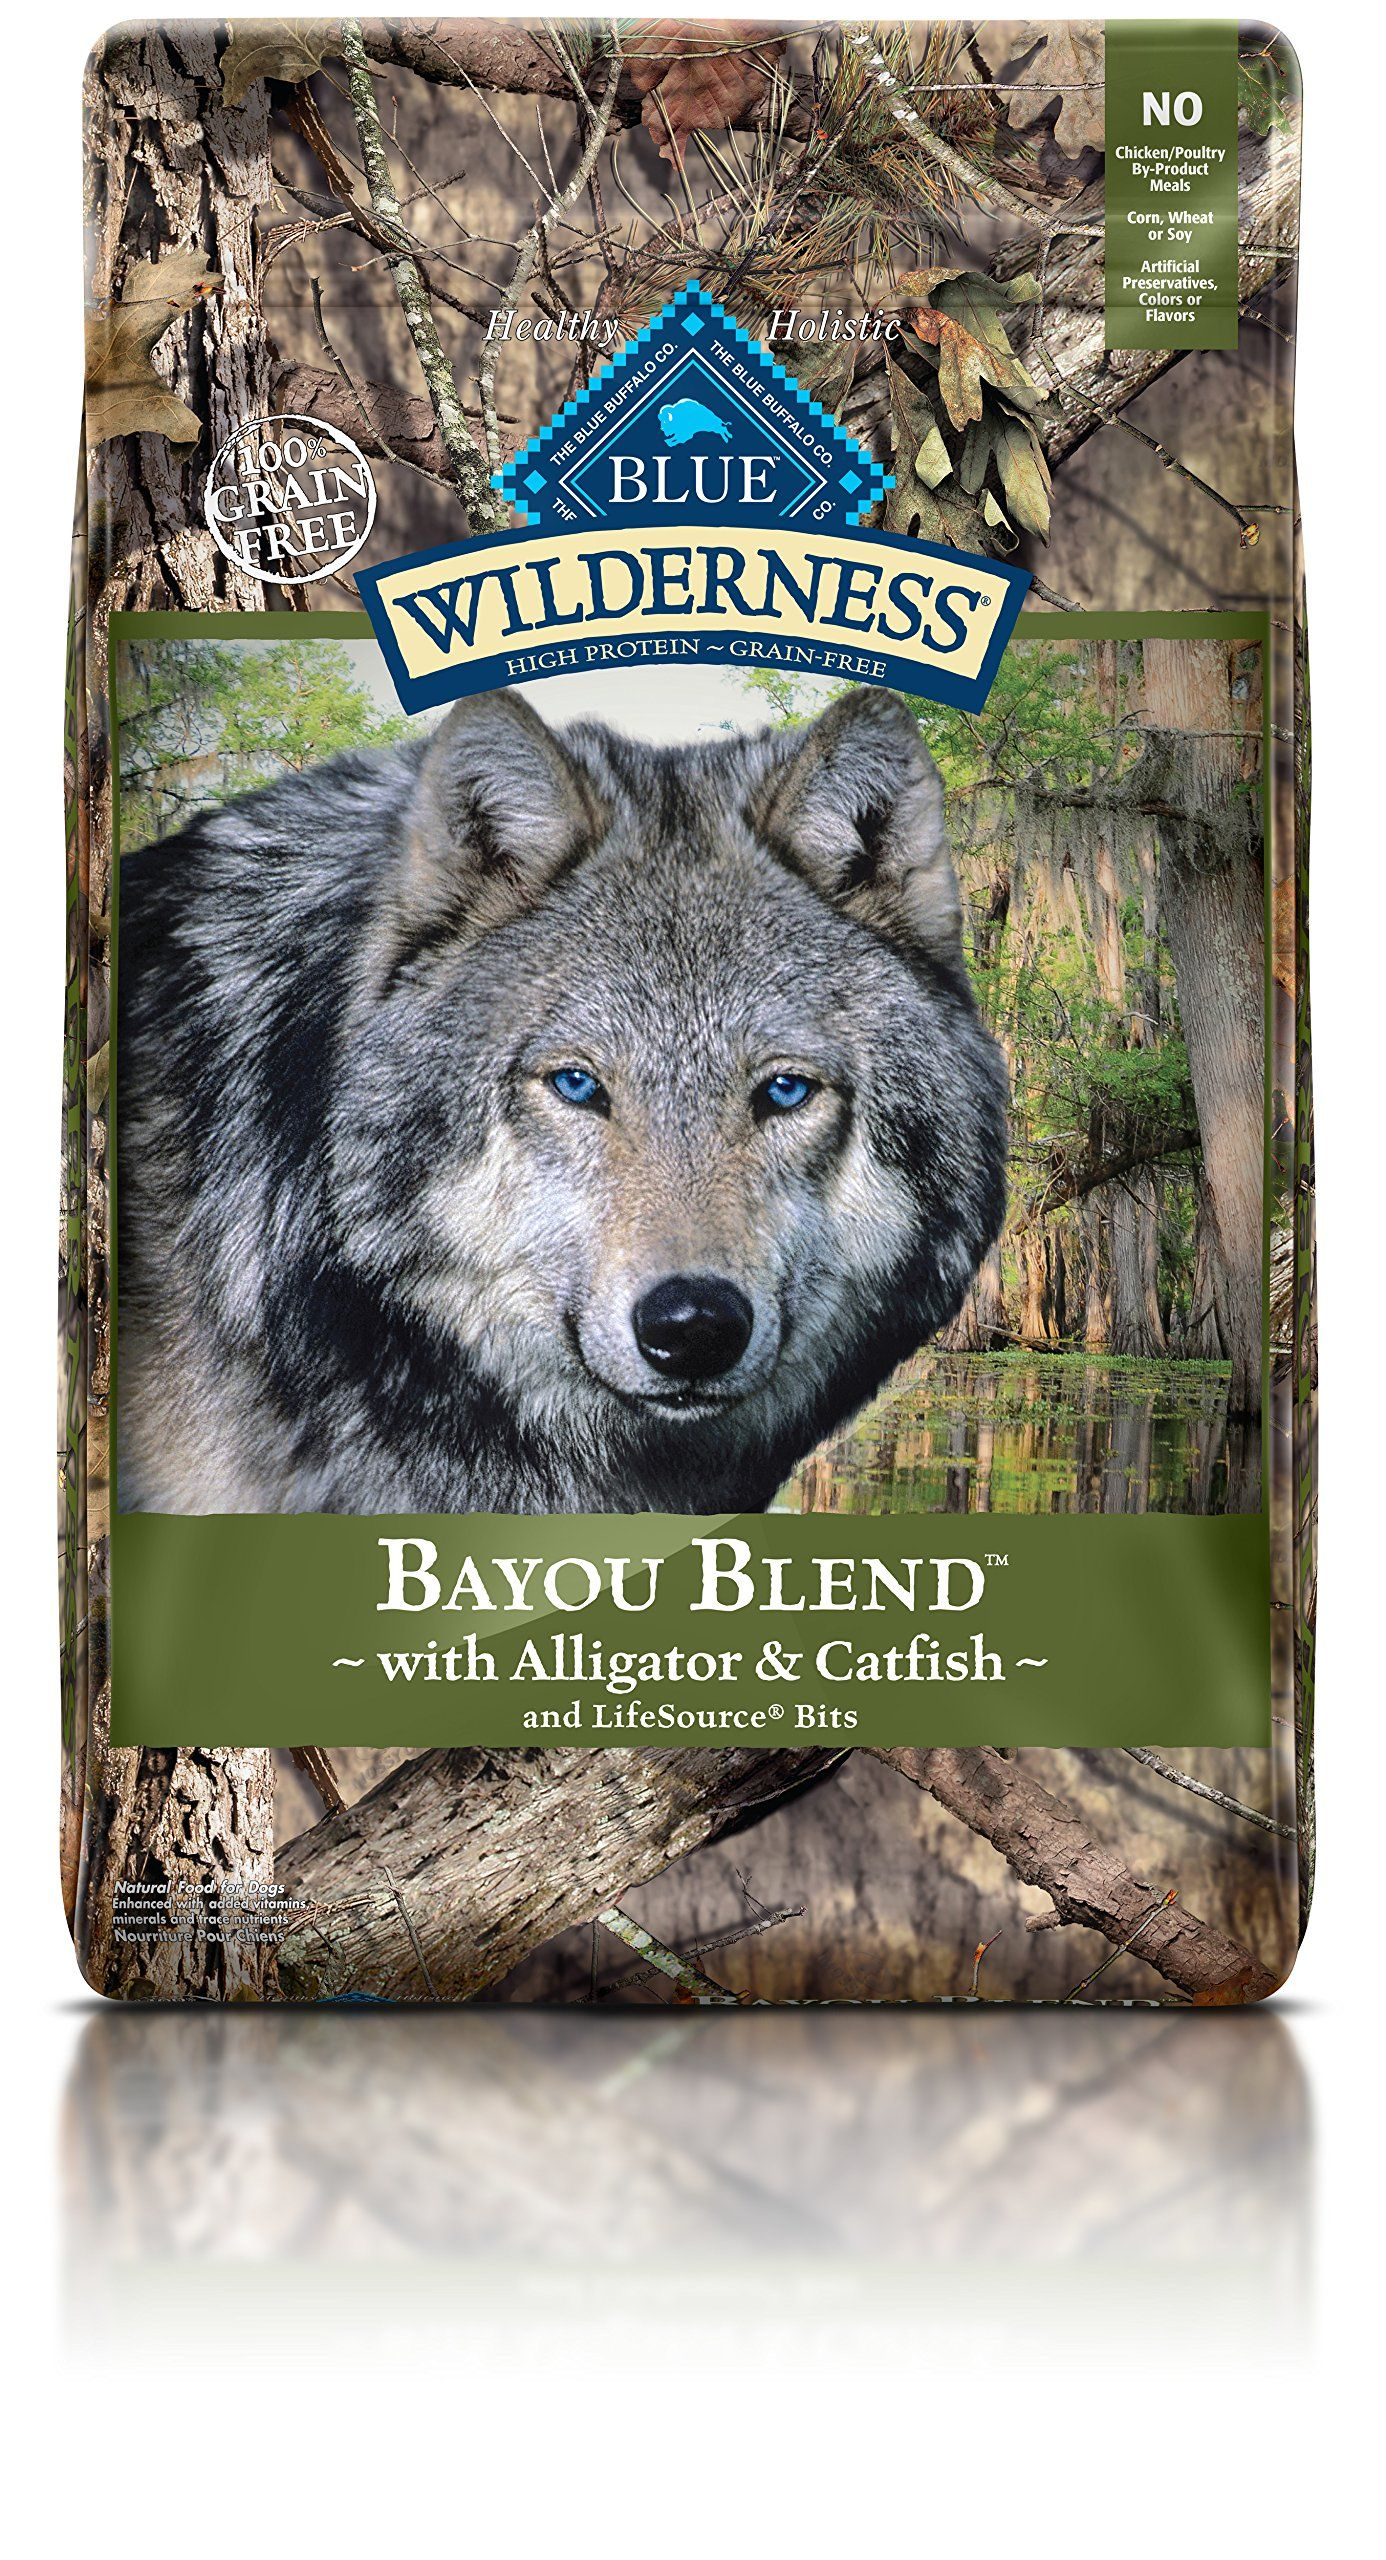 Blue Buffalo Wilderness Bayou Blend High Protein Grain Free